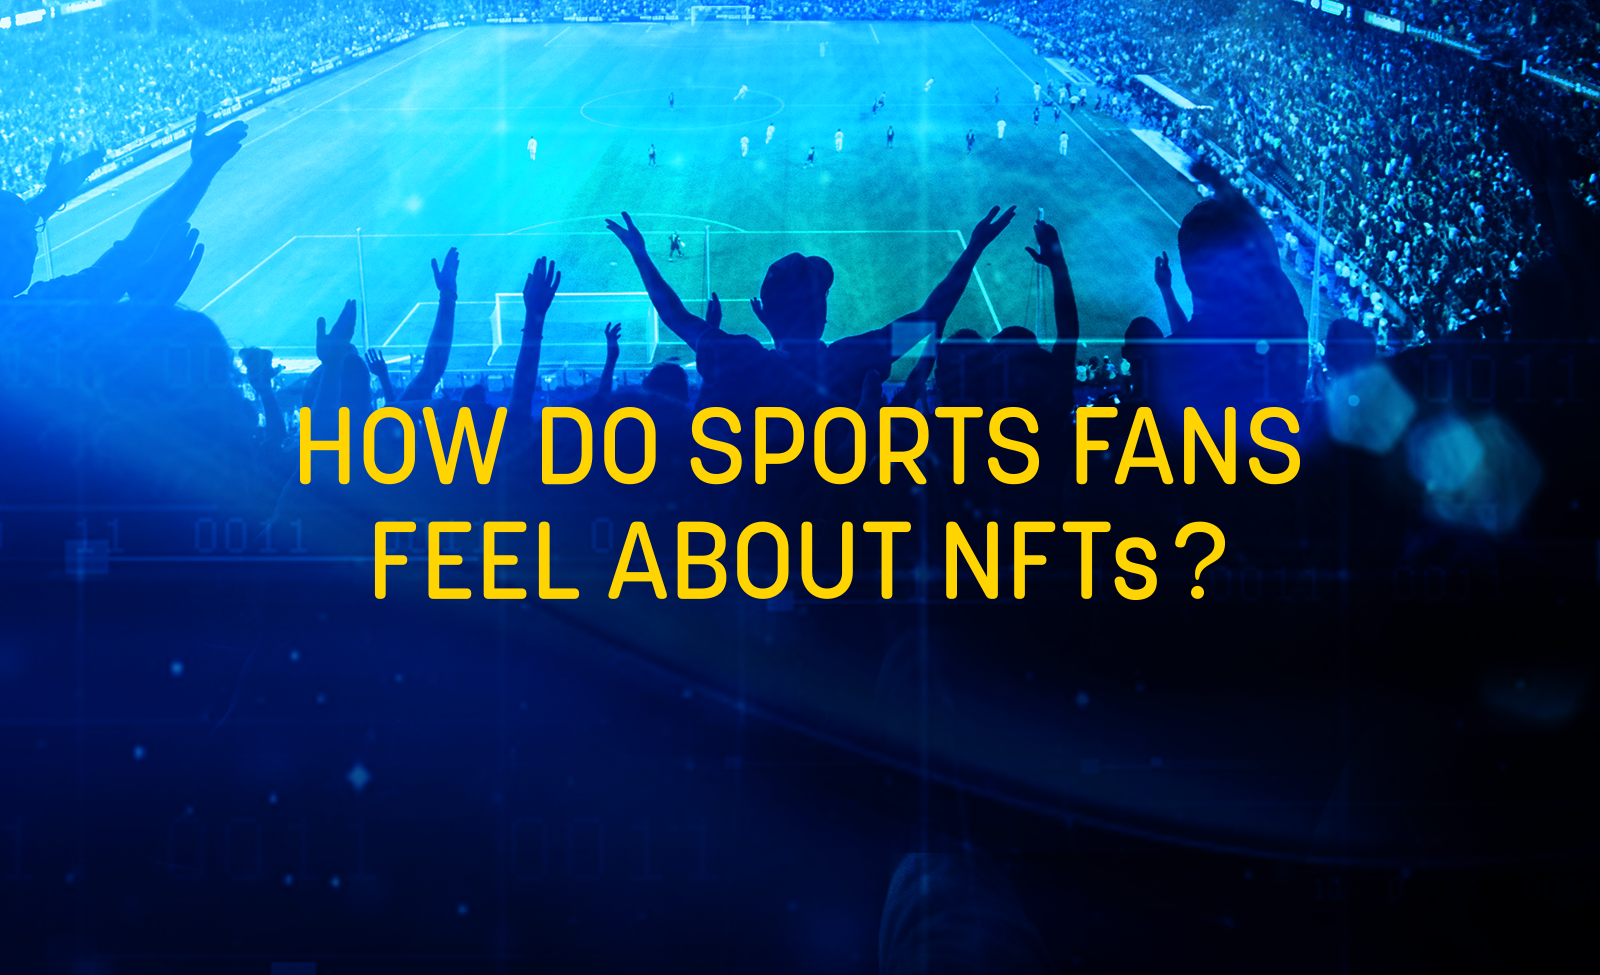 How Do Sports Fans Feel About NFTs?